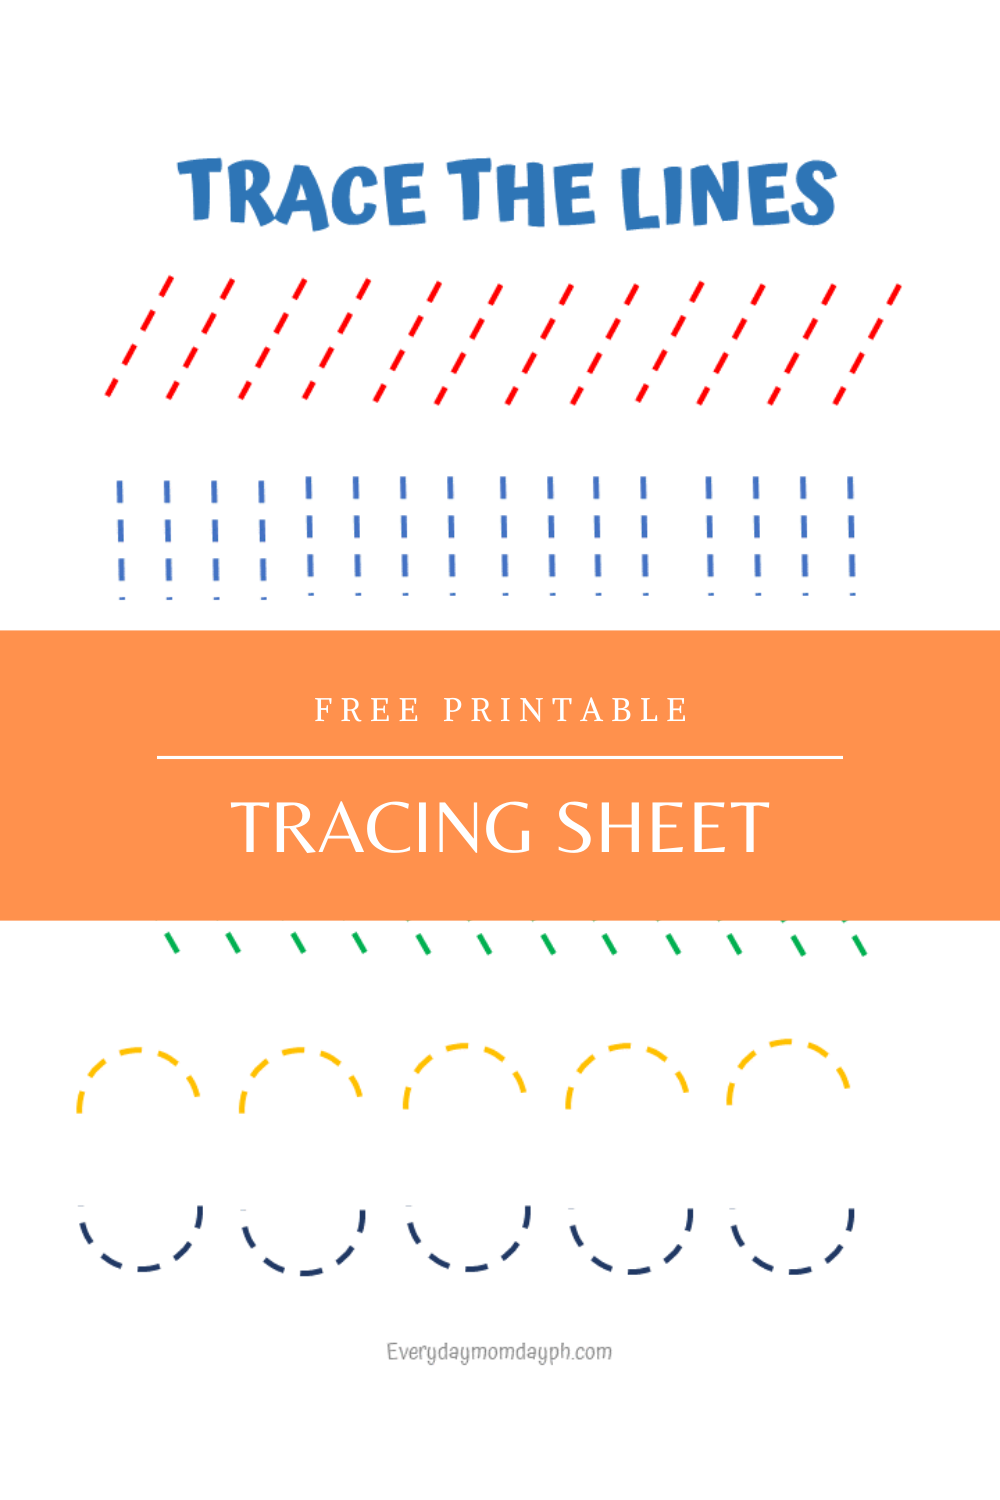 Trace the Lines Printable